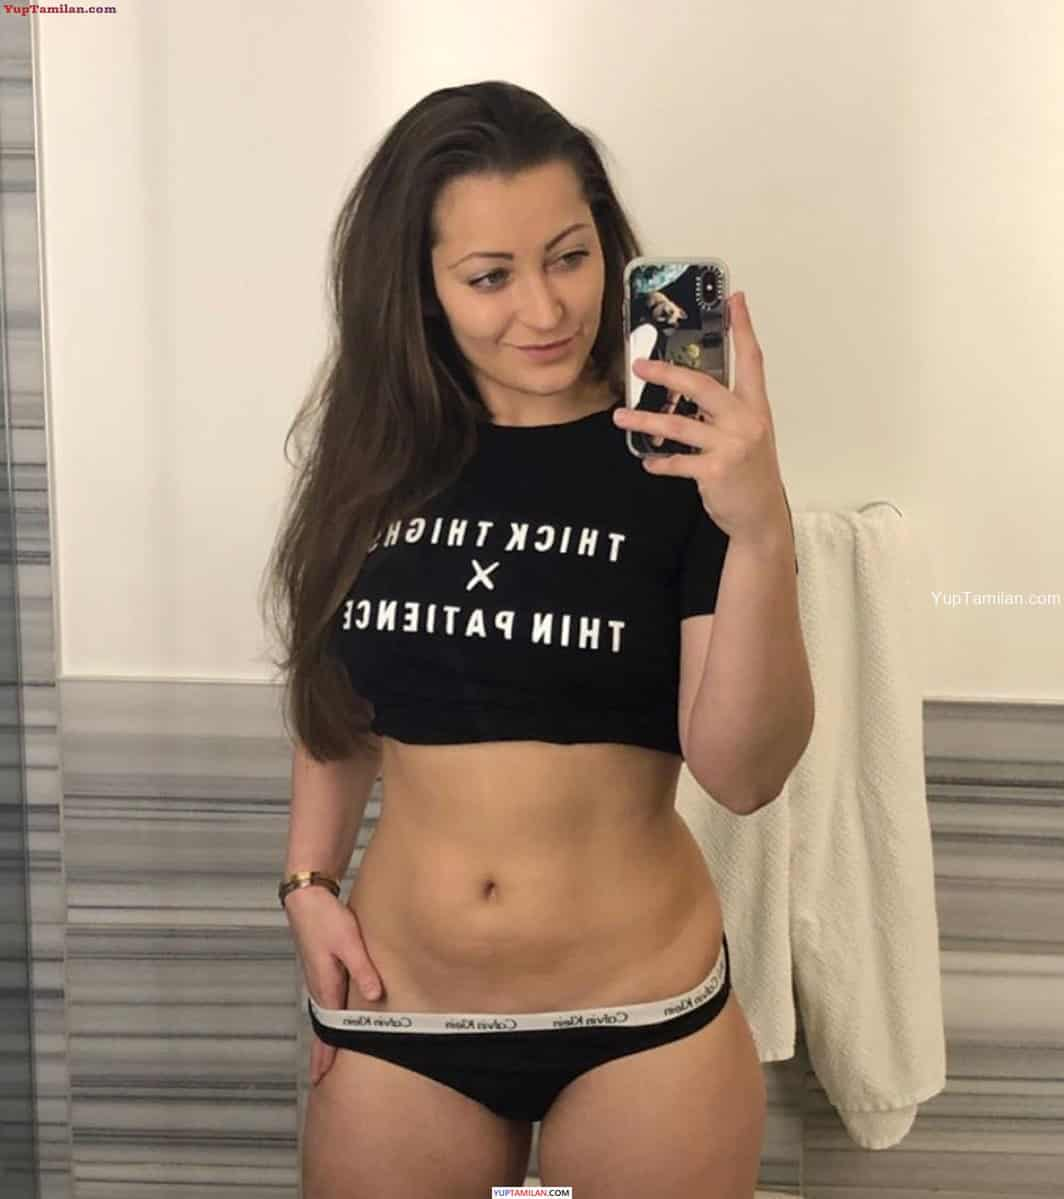 Dani Daniels sexy Bikini Photos-Hottest Images in Lingerie